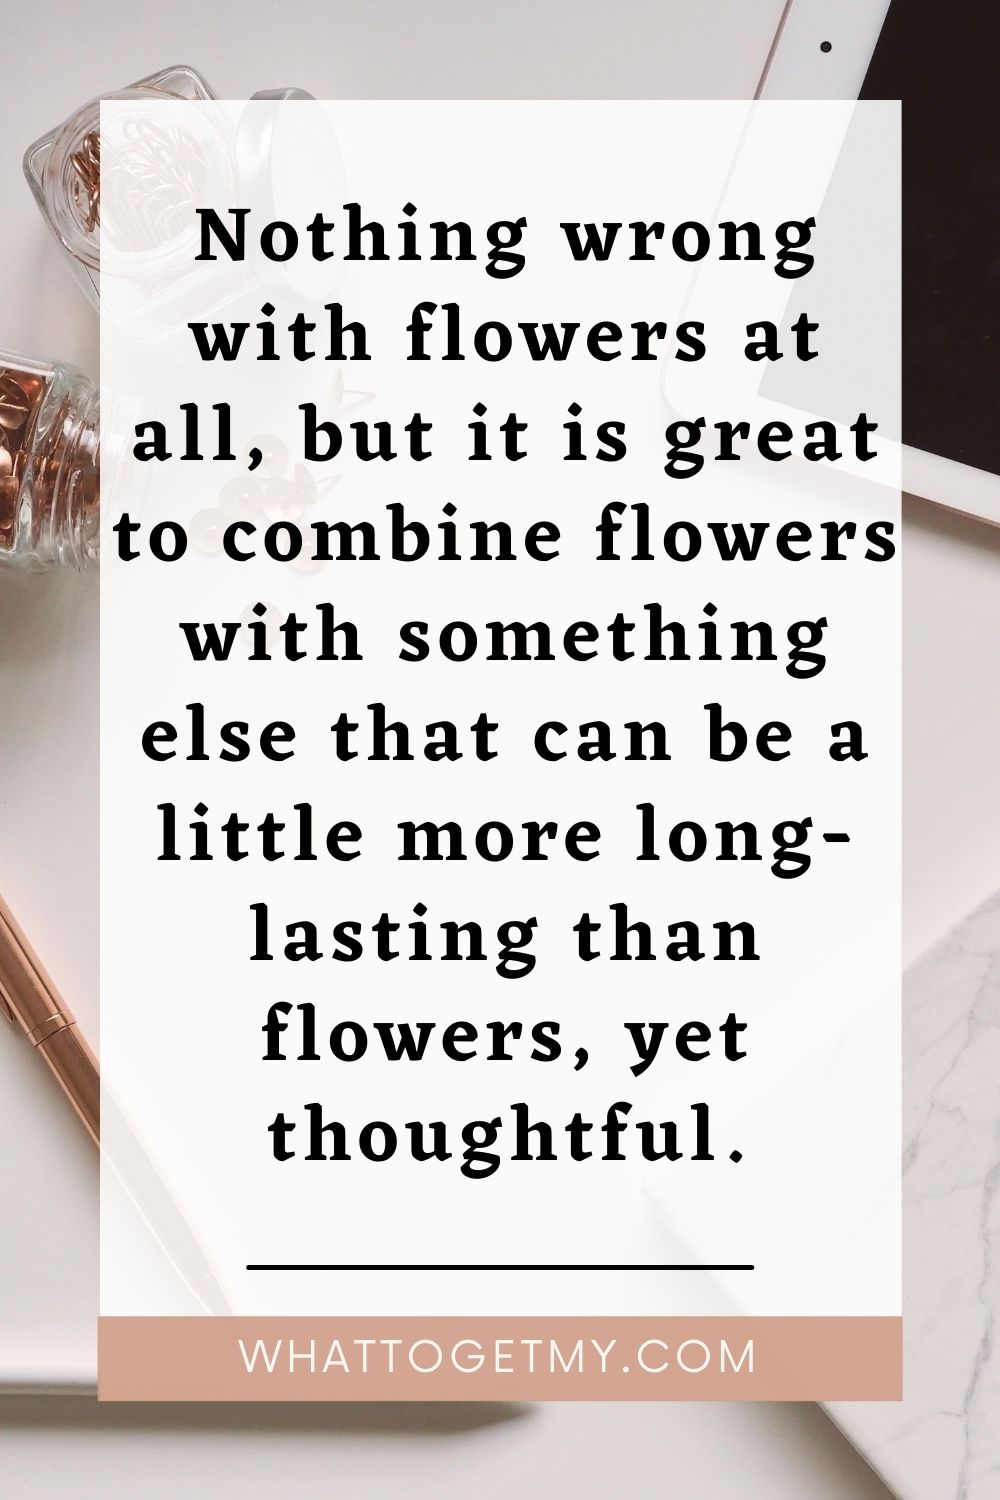 Nothing wrong with flowers at all, but it is great to combine flowers with something else that can be a little more long-lasting than flowers, yet thoughtful.